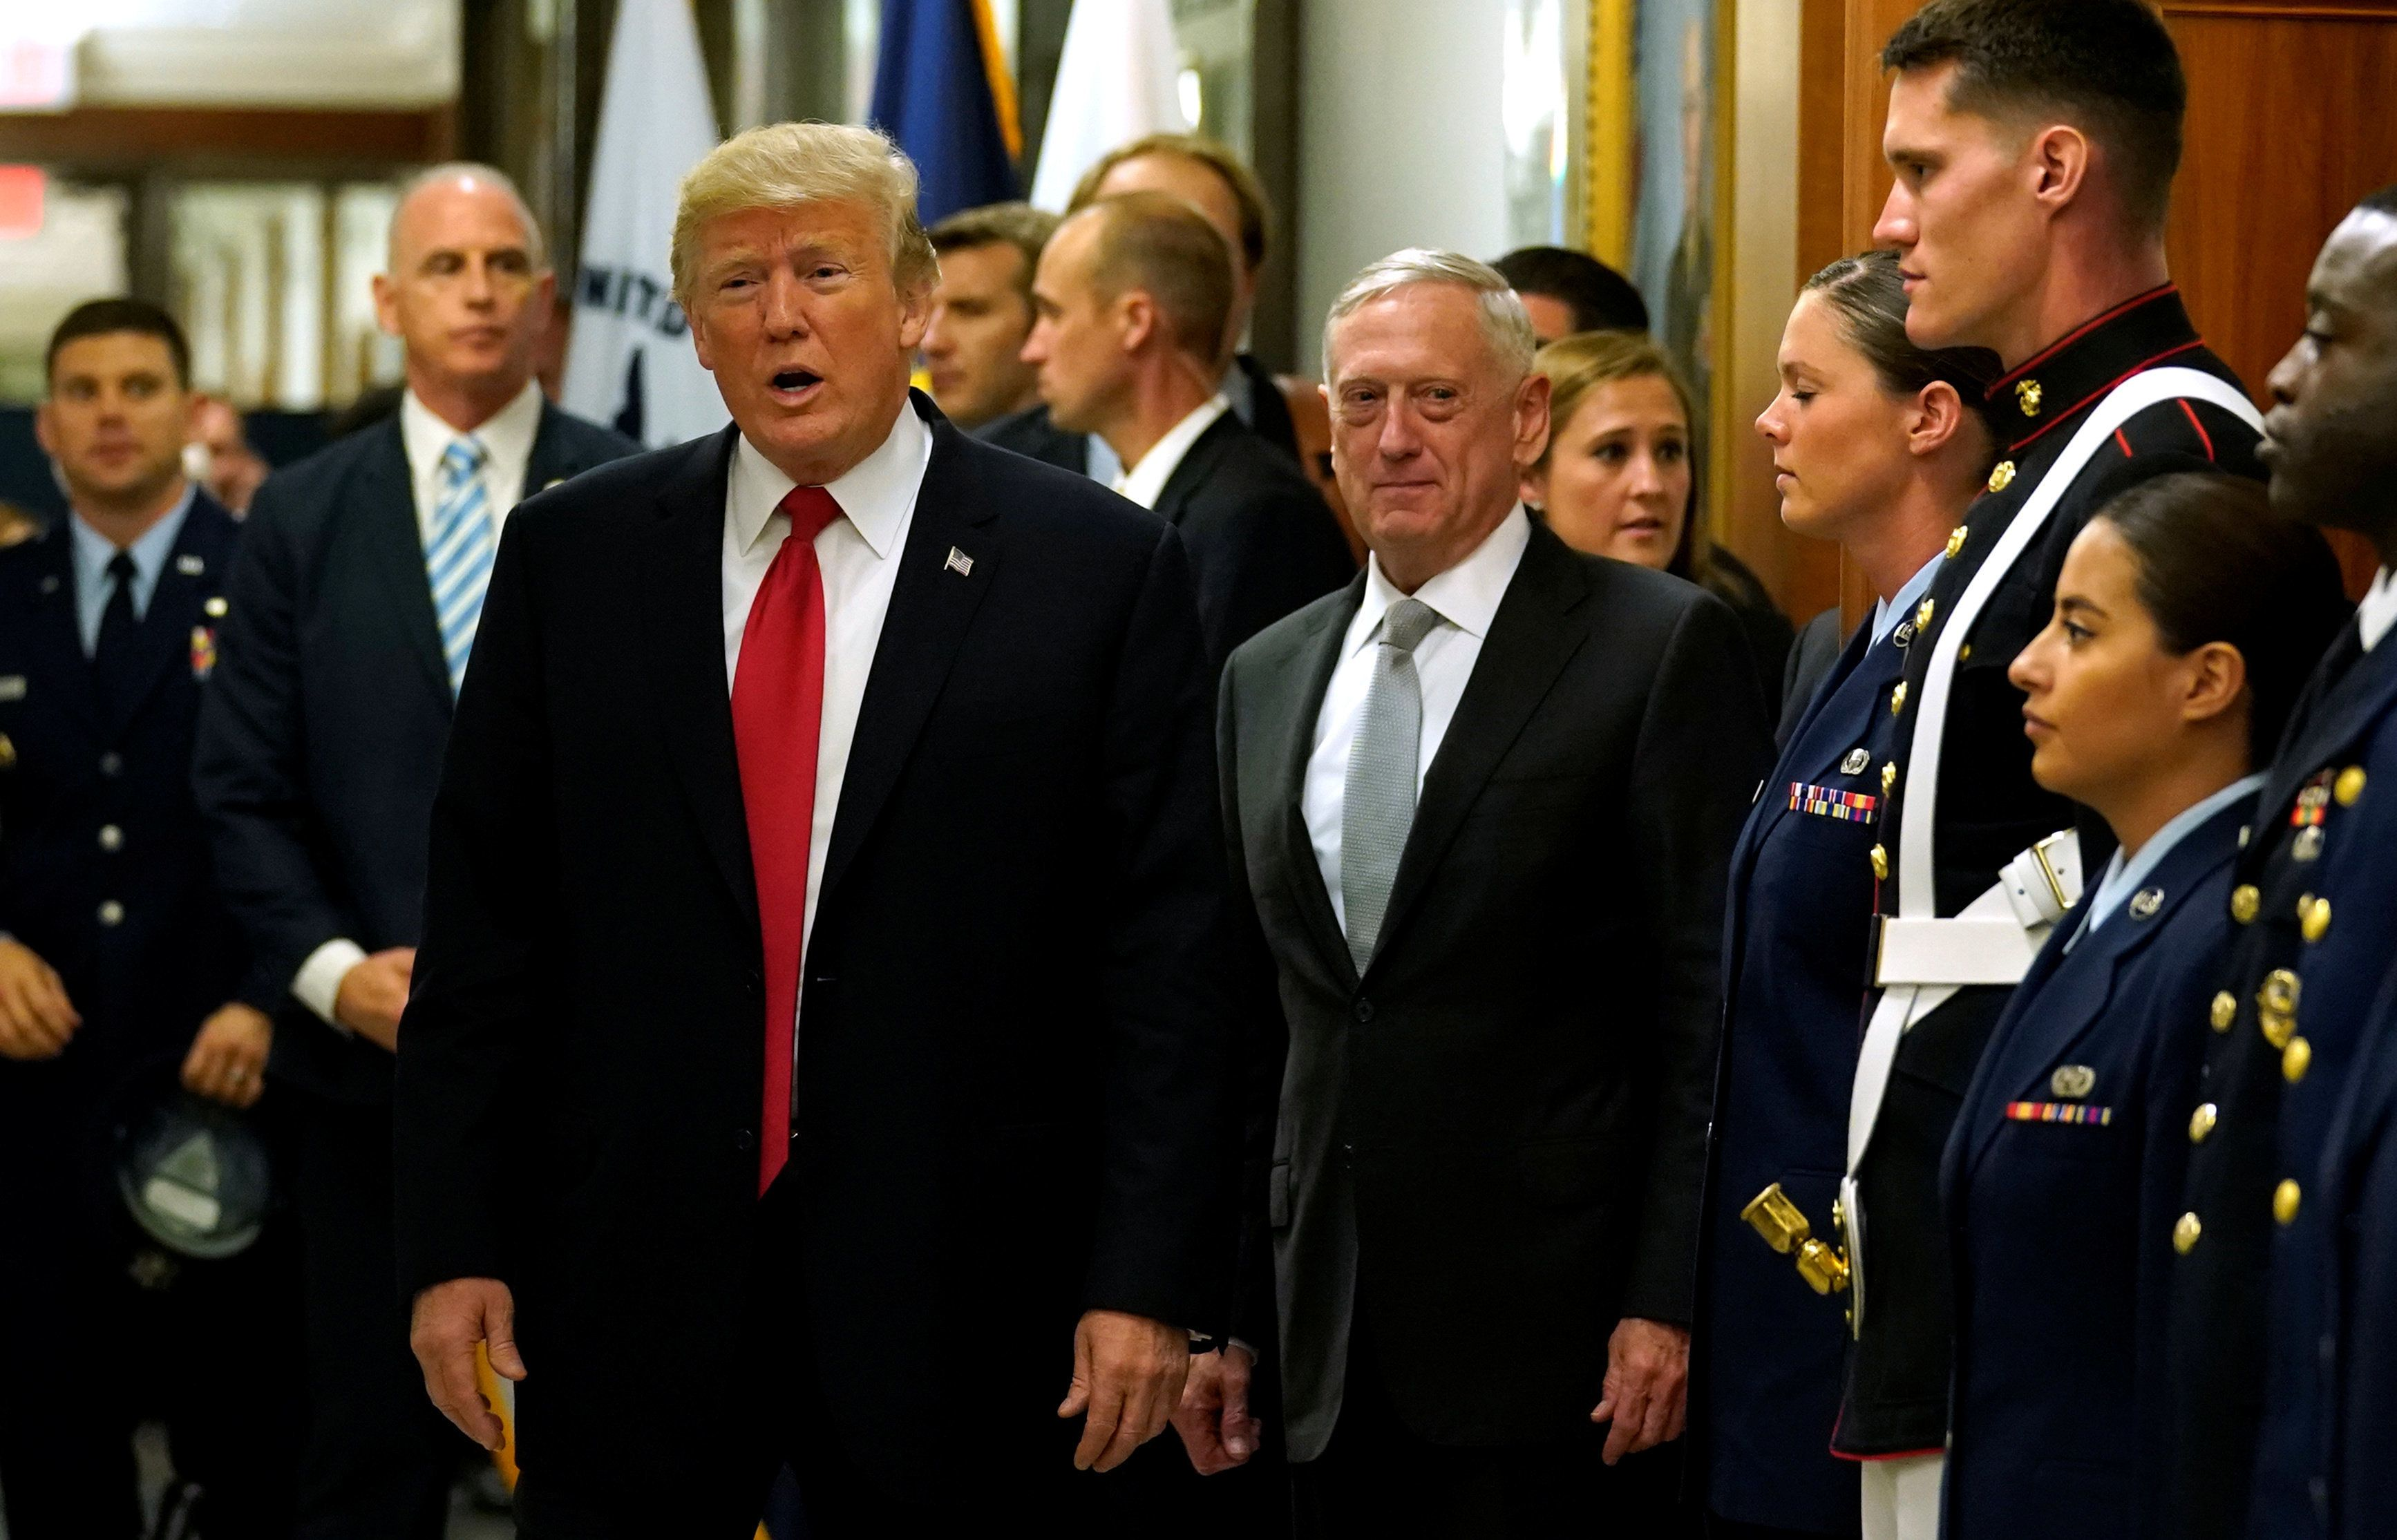 Secretary of Defense James Mattis, right, escorts President Donald Trump as he greets military personnel after attending a me